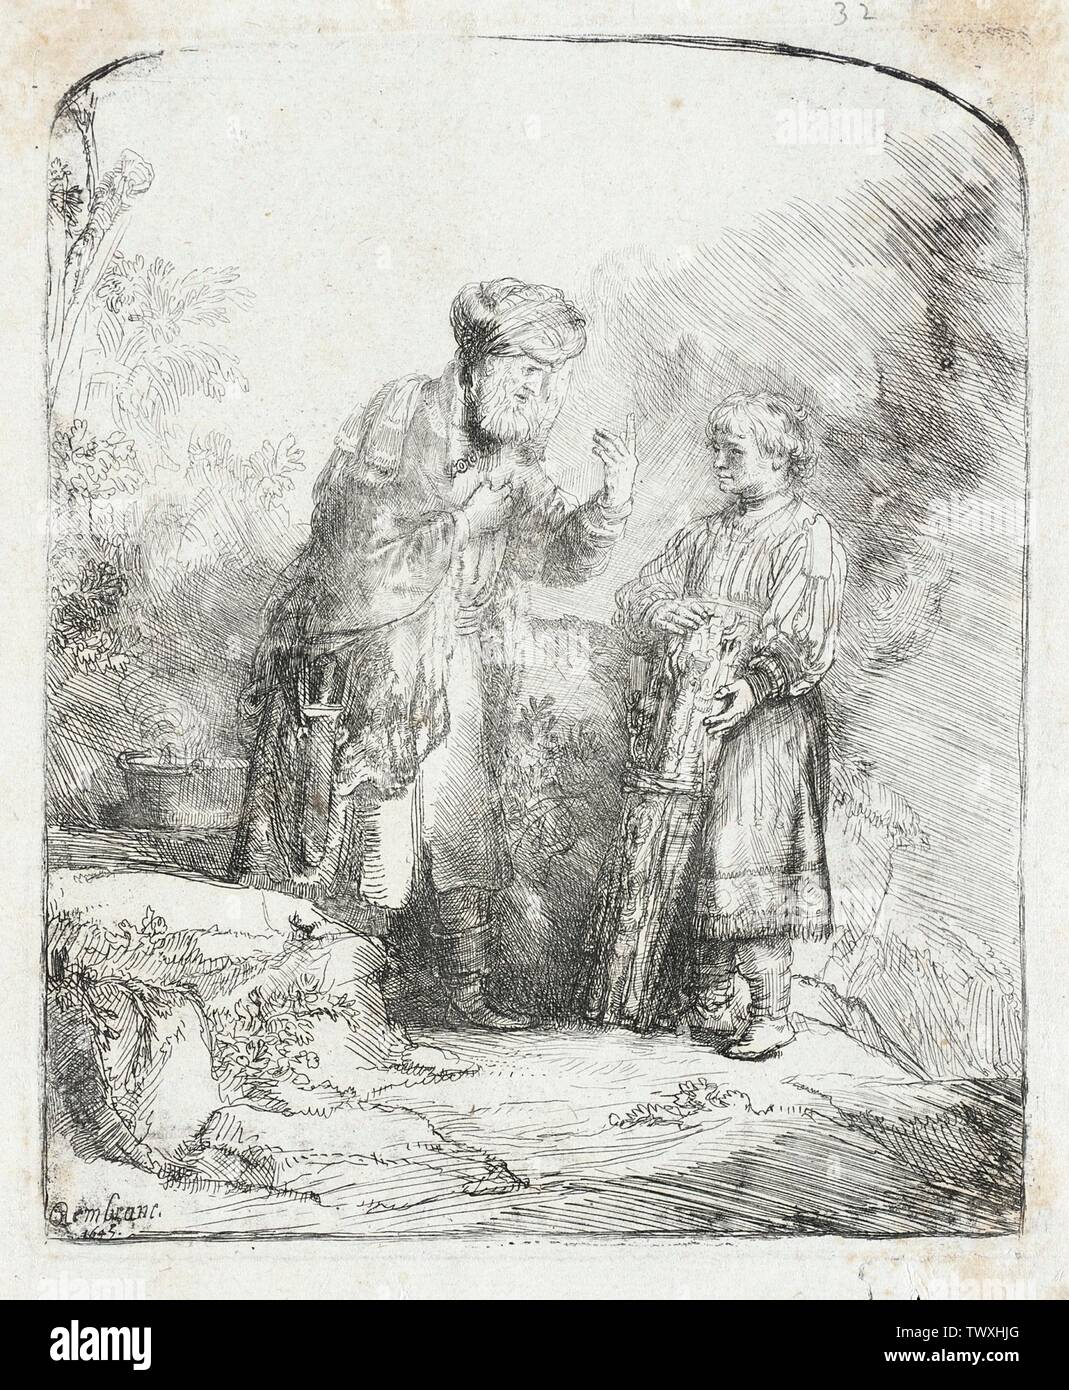 'Abraham and Isaac; English:  Holland, 1645 Edition: Basan impression Prints; etchings Etching Gift of Mrs. Mary B. Regan (31.21.8) Prints and Drawings; 1645date QS:P571,+1645-00-00T00:00:00Z/9; ' - Stock Image